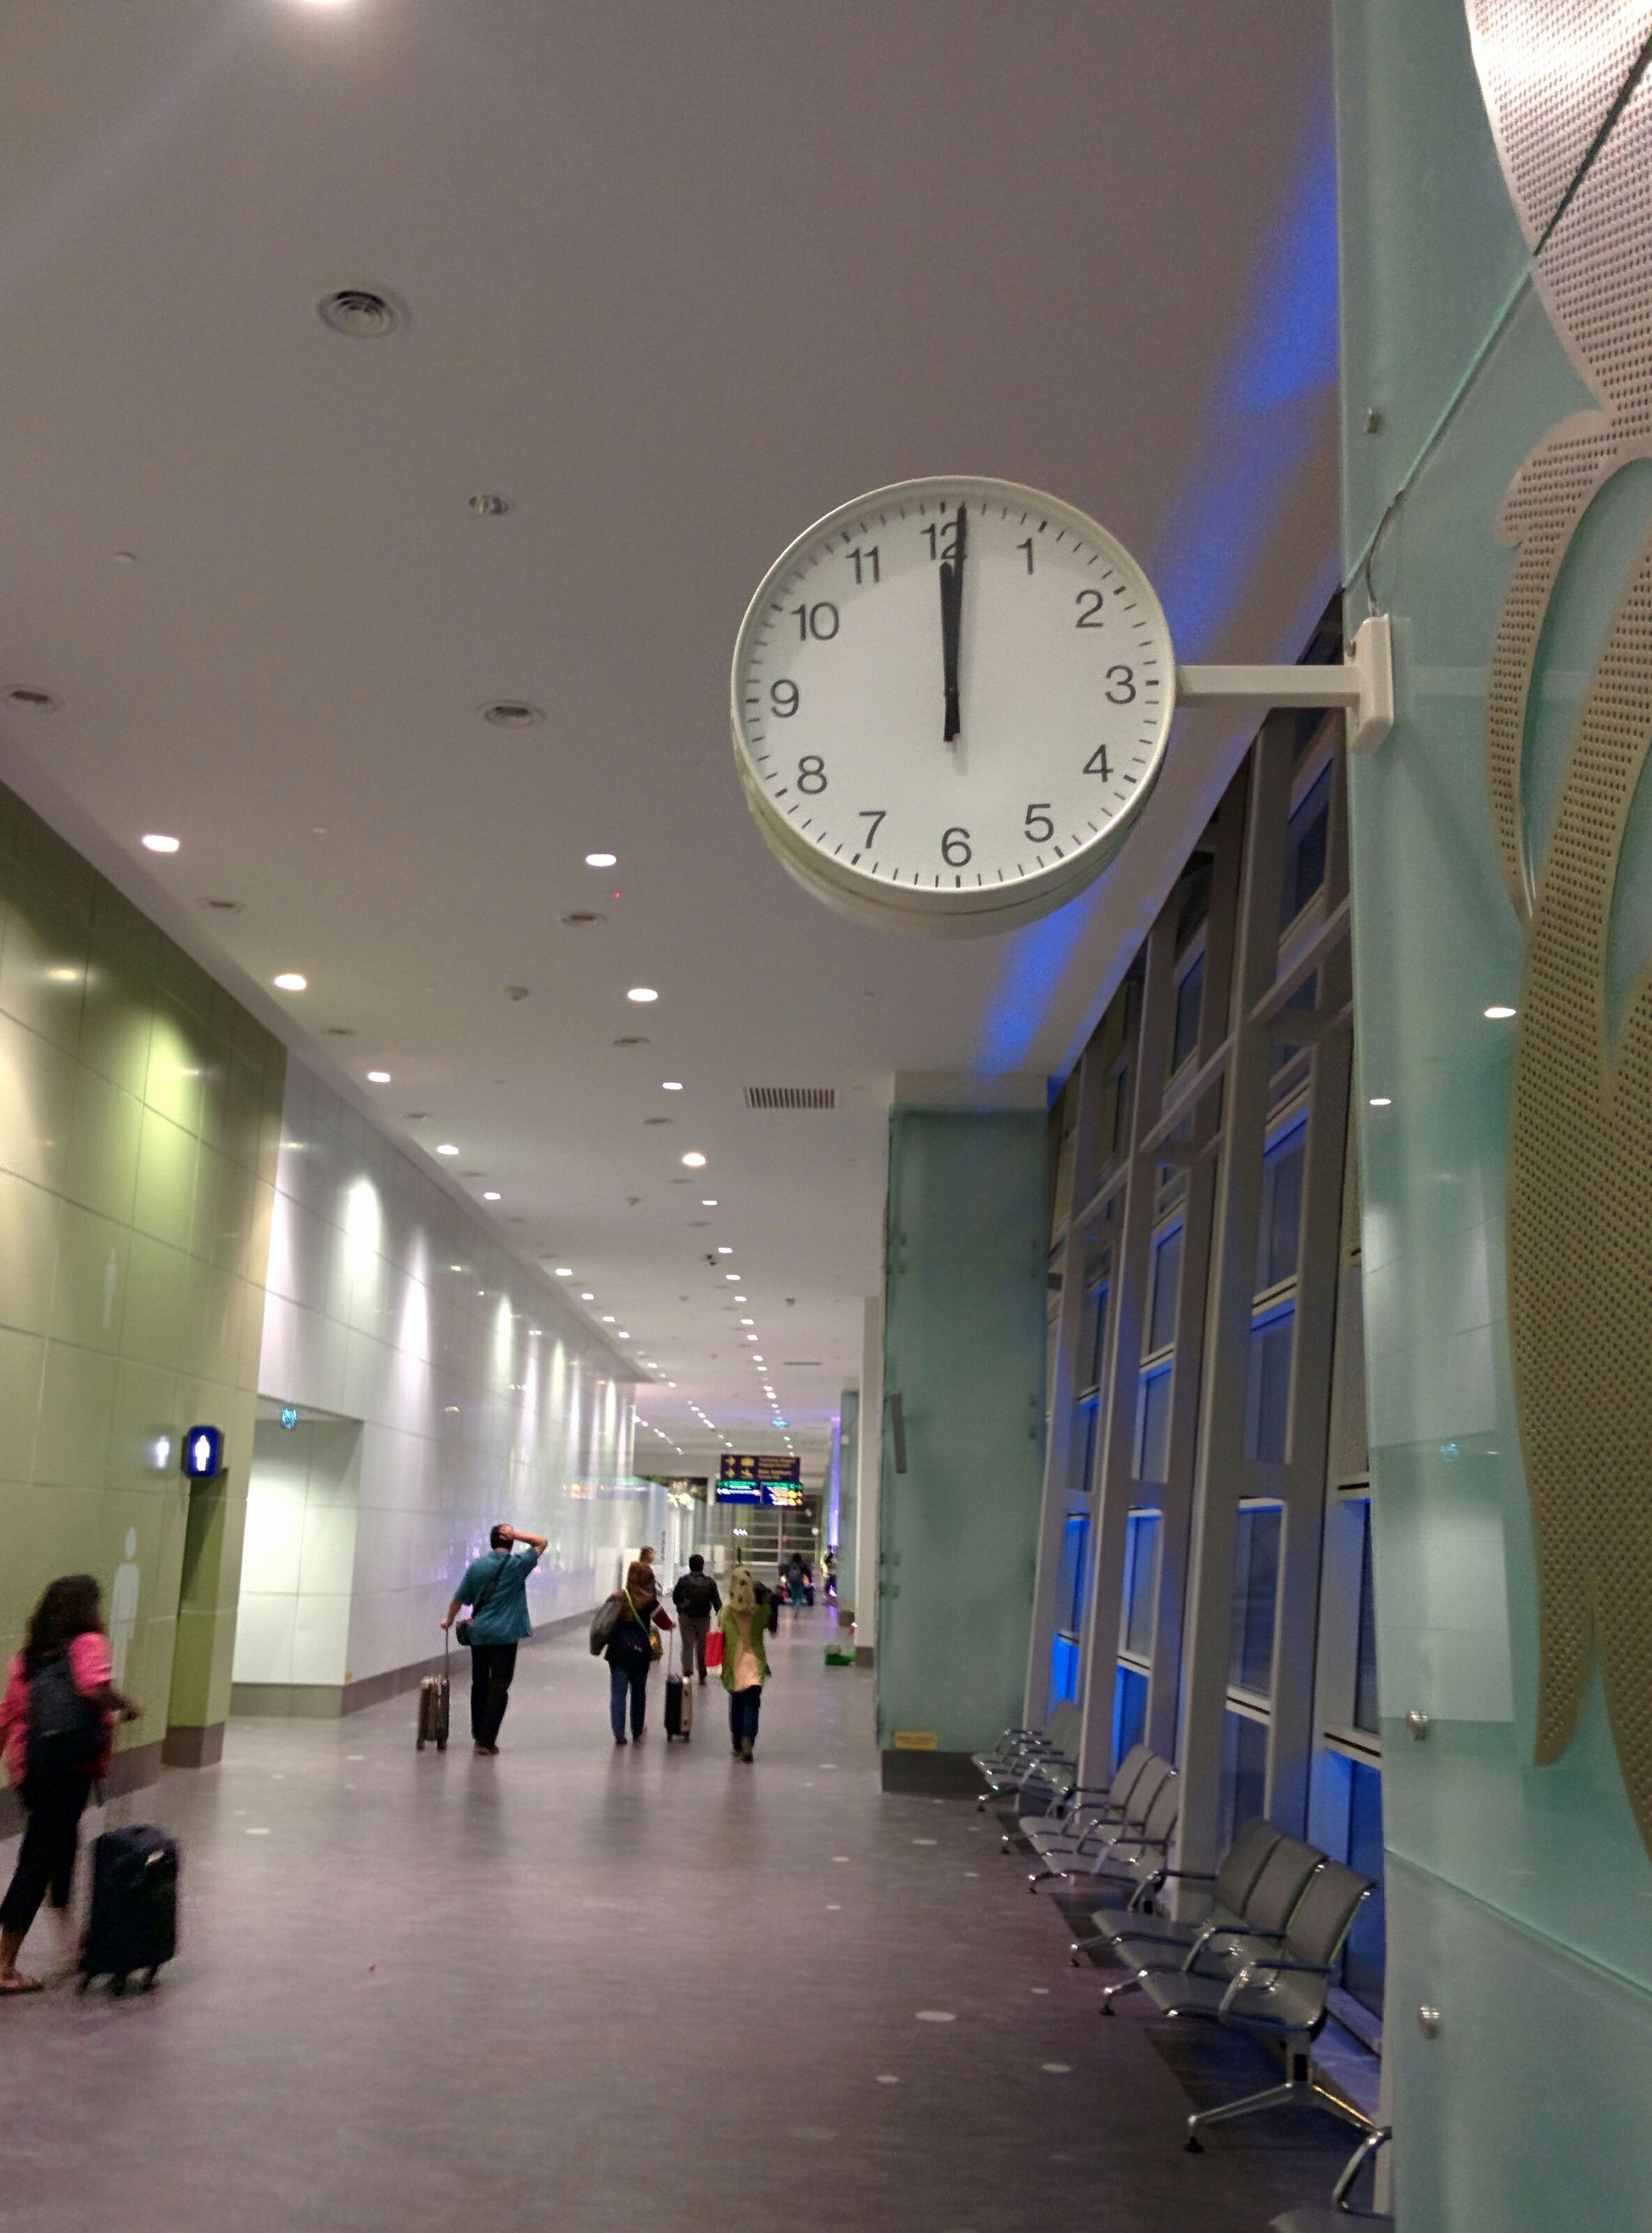 indoors, architecture, ceiling, men, built structure, person, illuminated, lifestyles, large group of people, leisure activity, lighting equipment, clock, flooring, modern, corridor, walking, travel, hanging, shopping mall